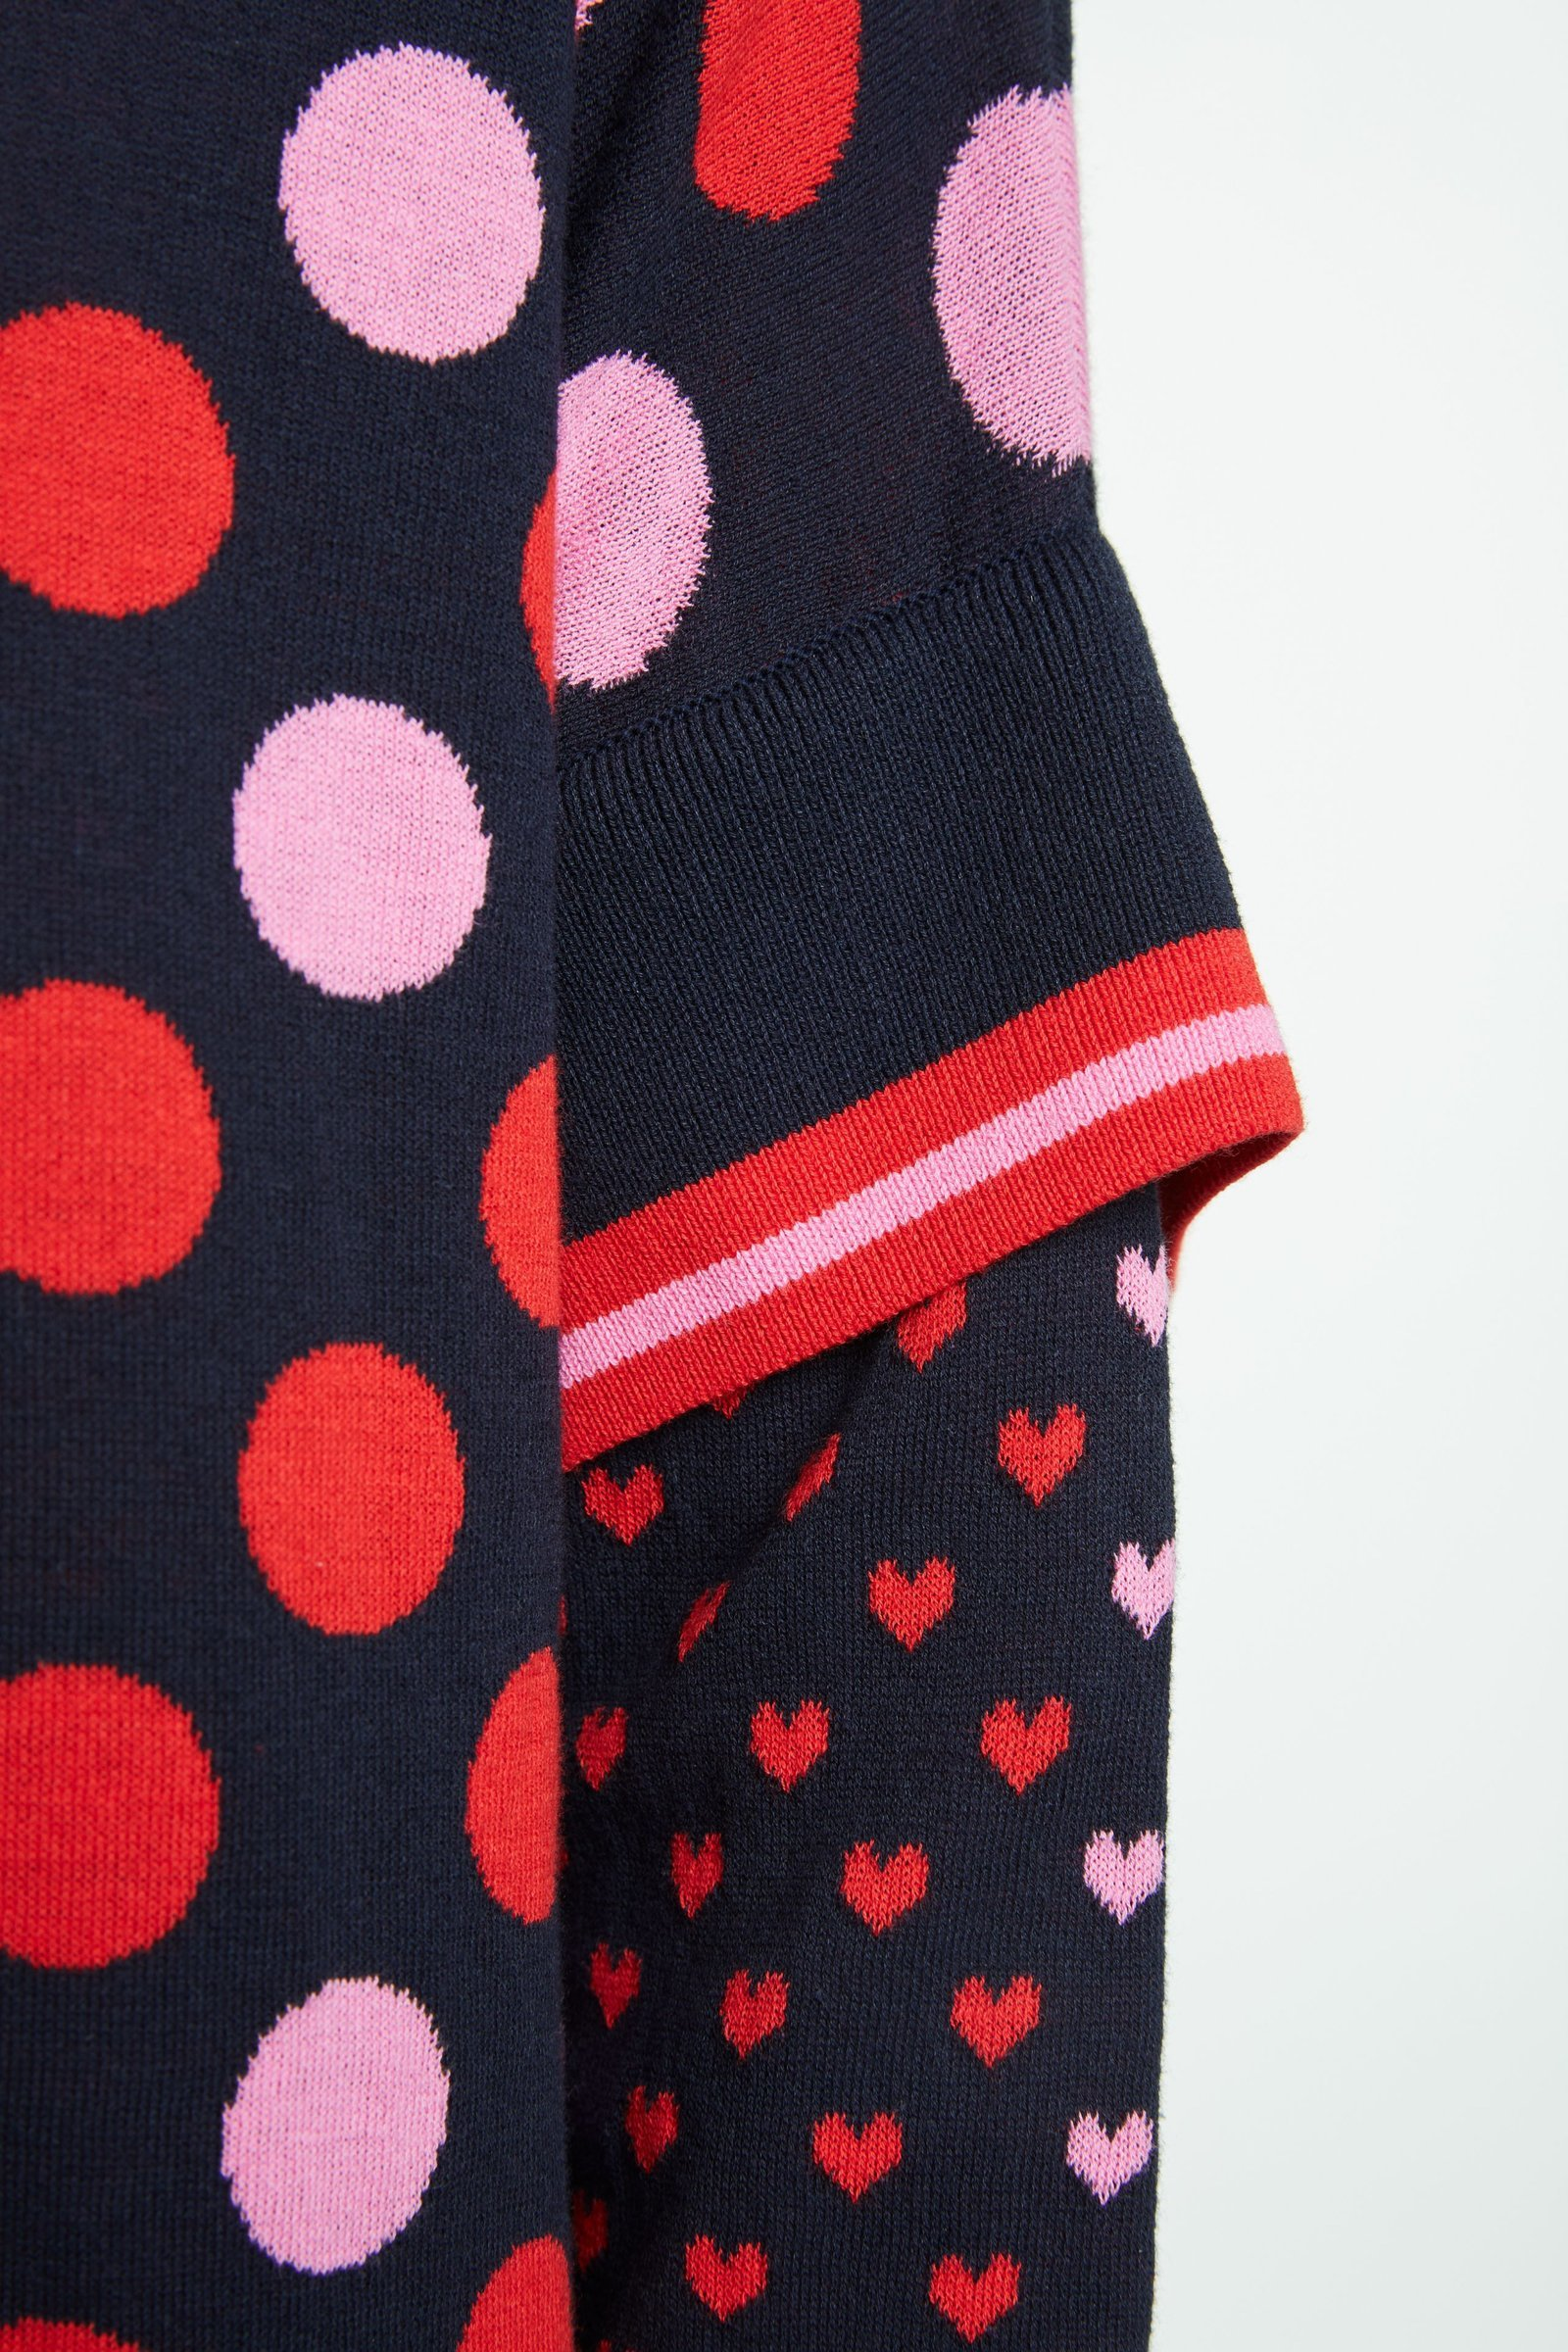 Sweater in Navy Knit with Red and Pink Polka Dots